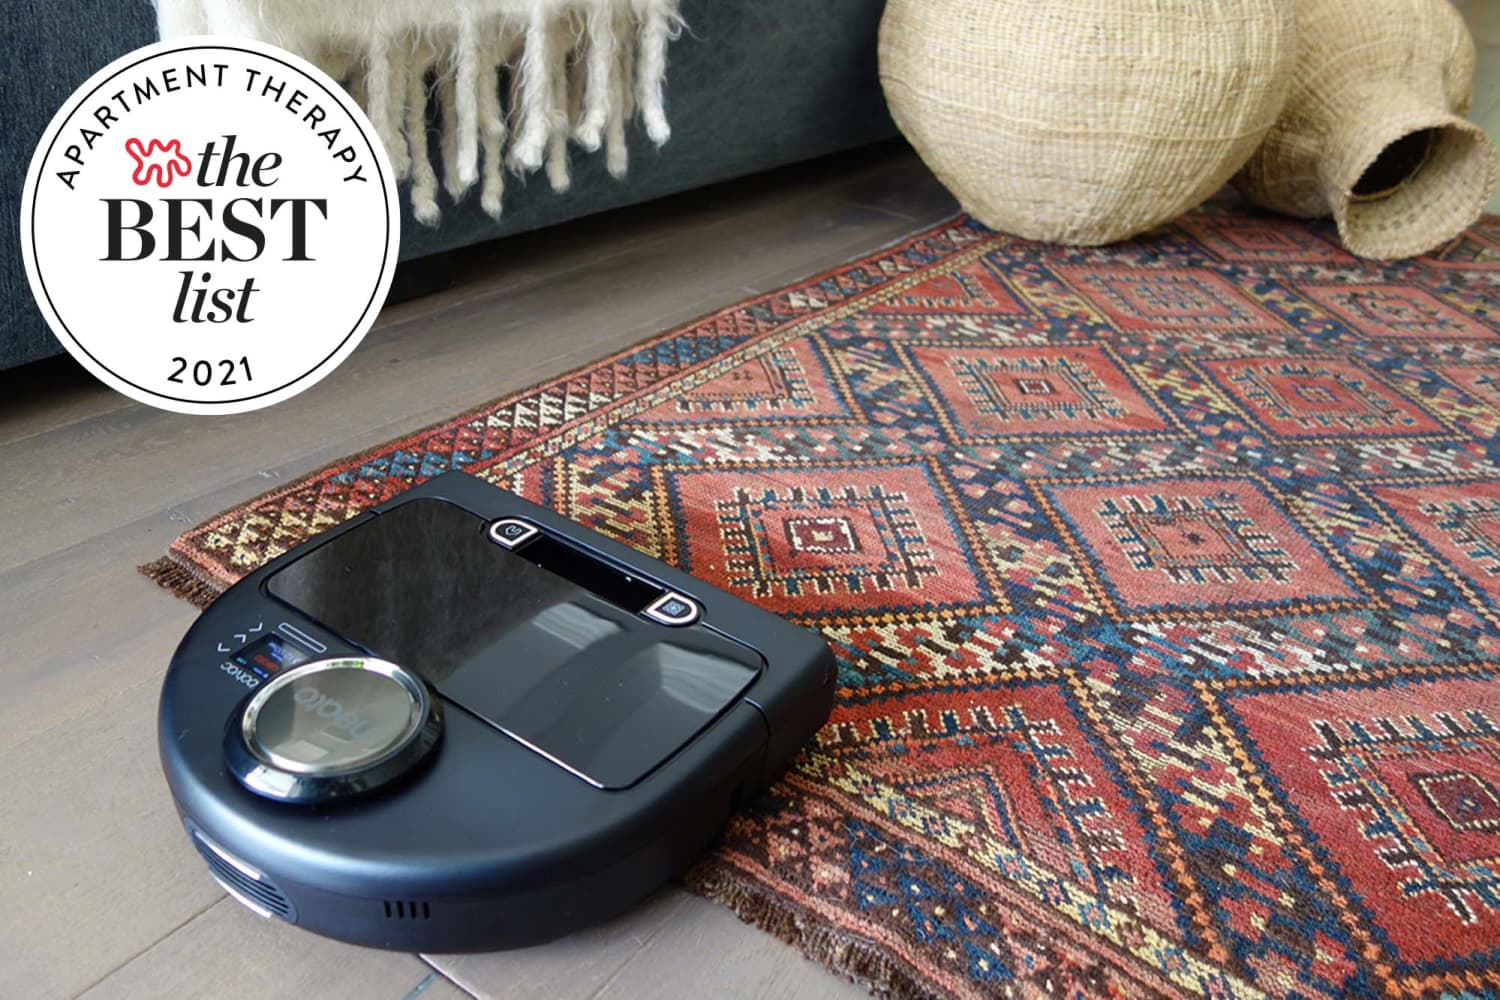 The Best Robot Vacuums You Can Buy Now